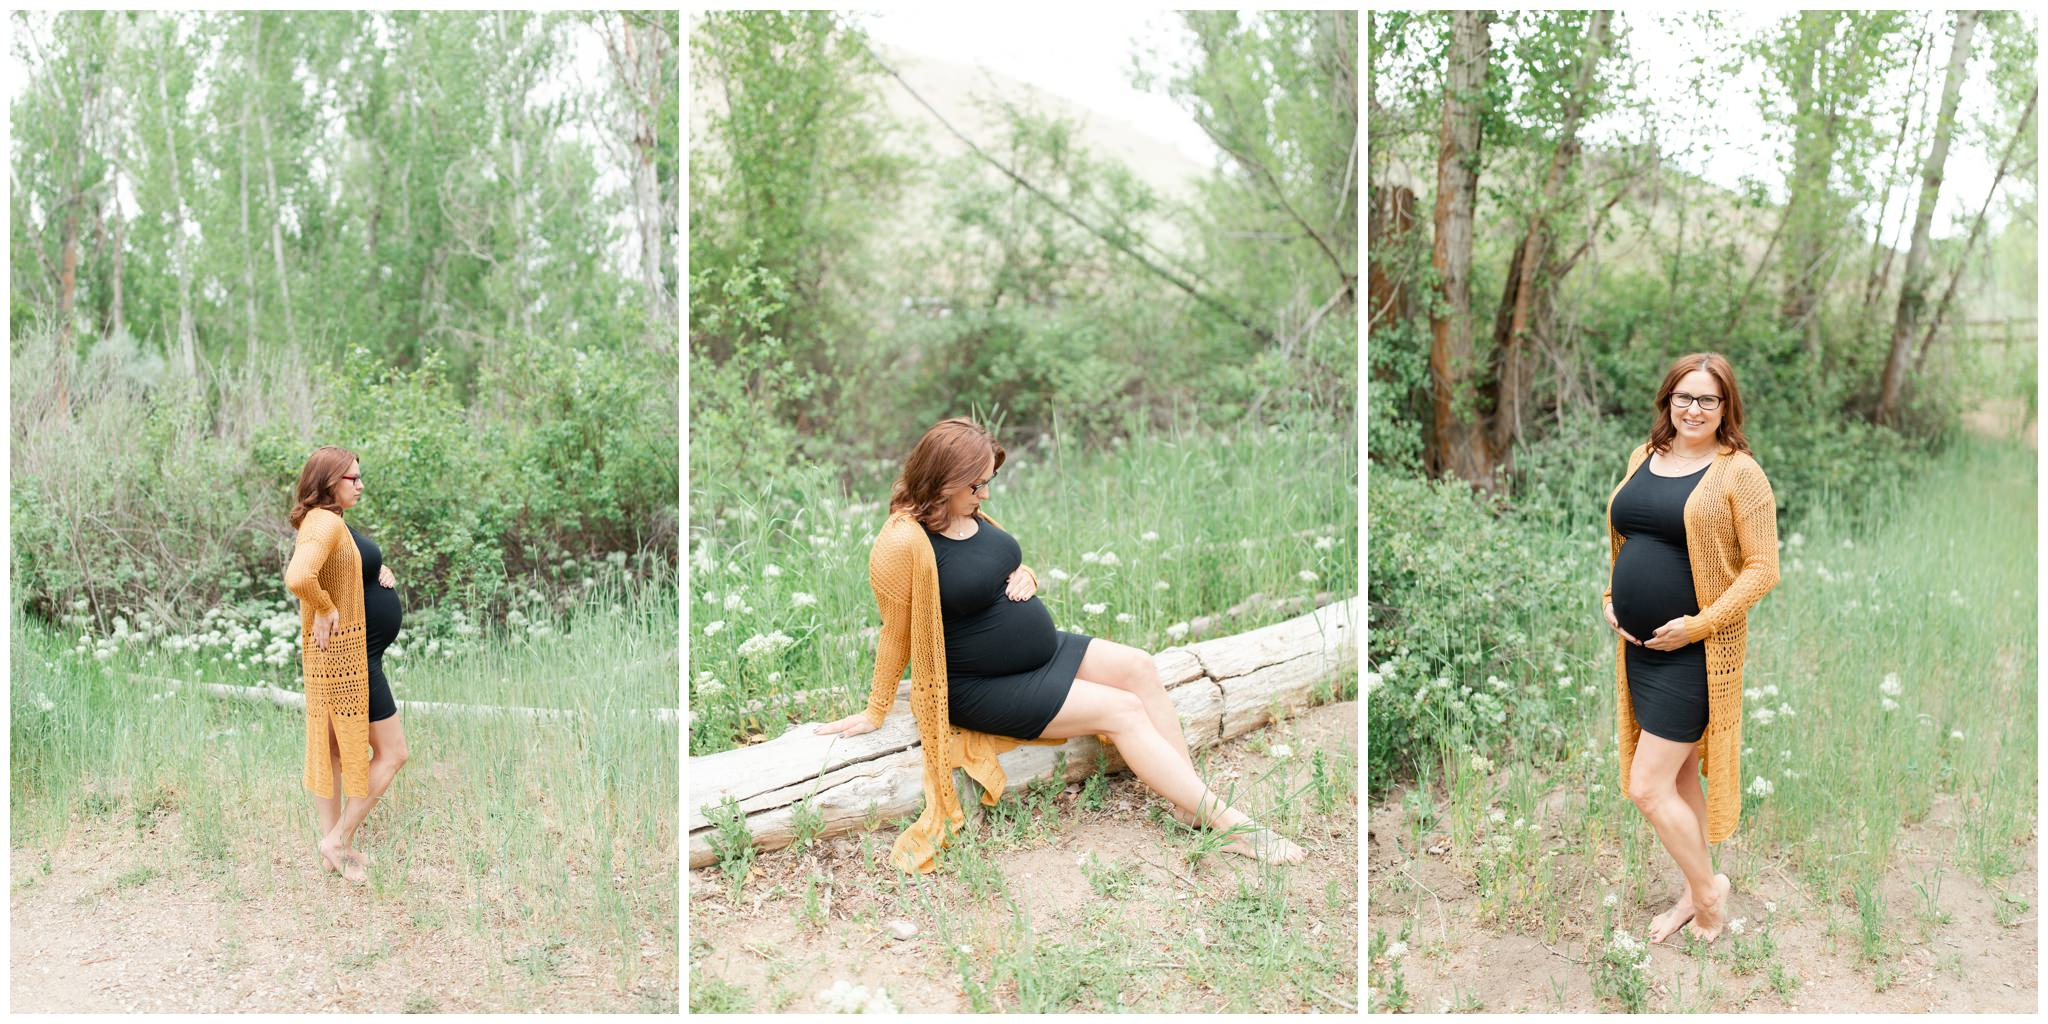 Cute poses for pregnant women for maternity pictures.